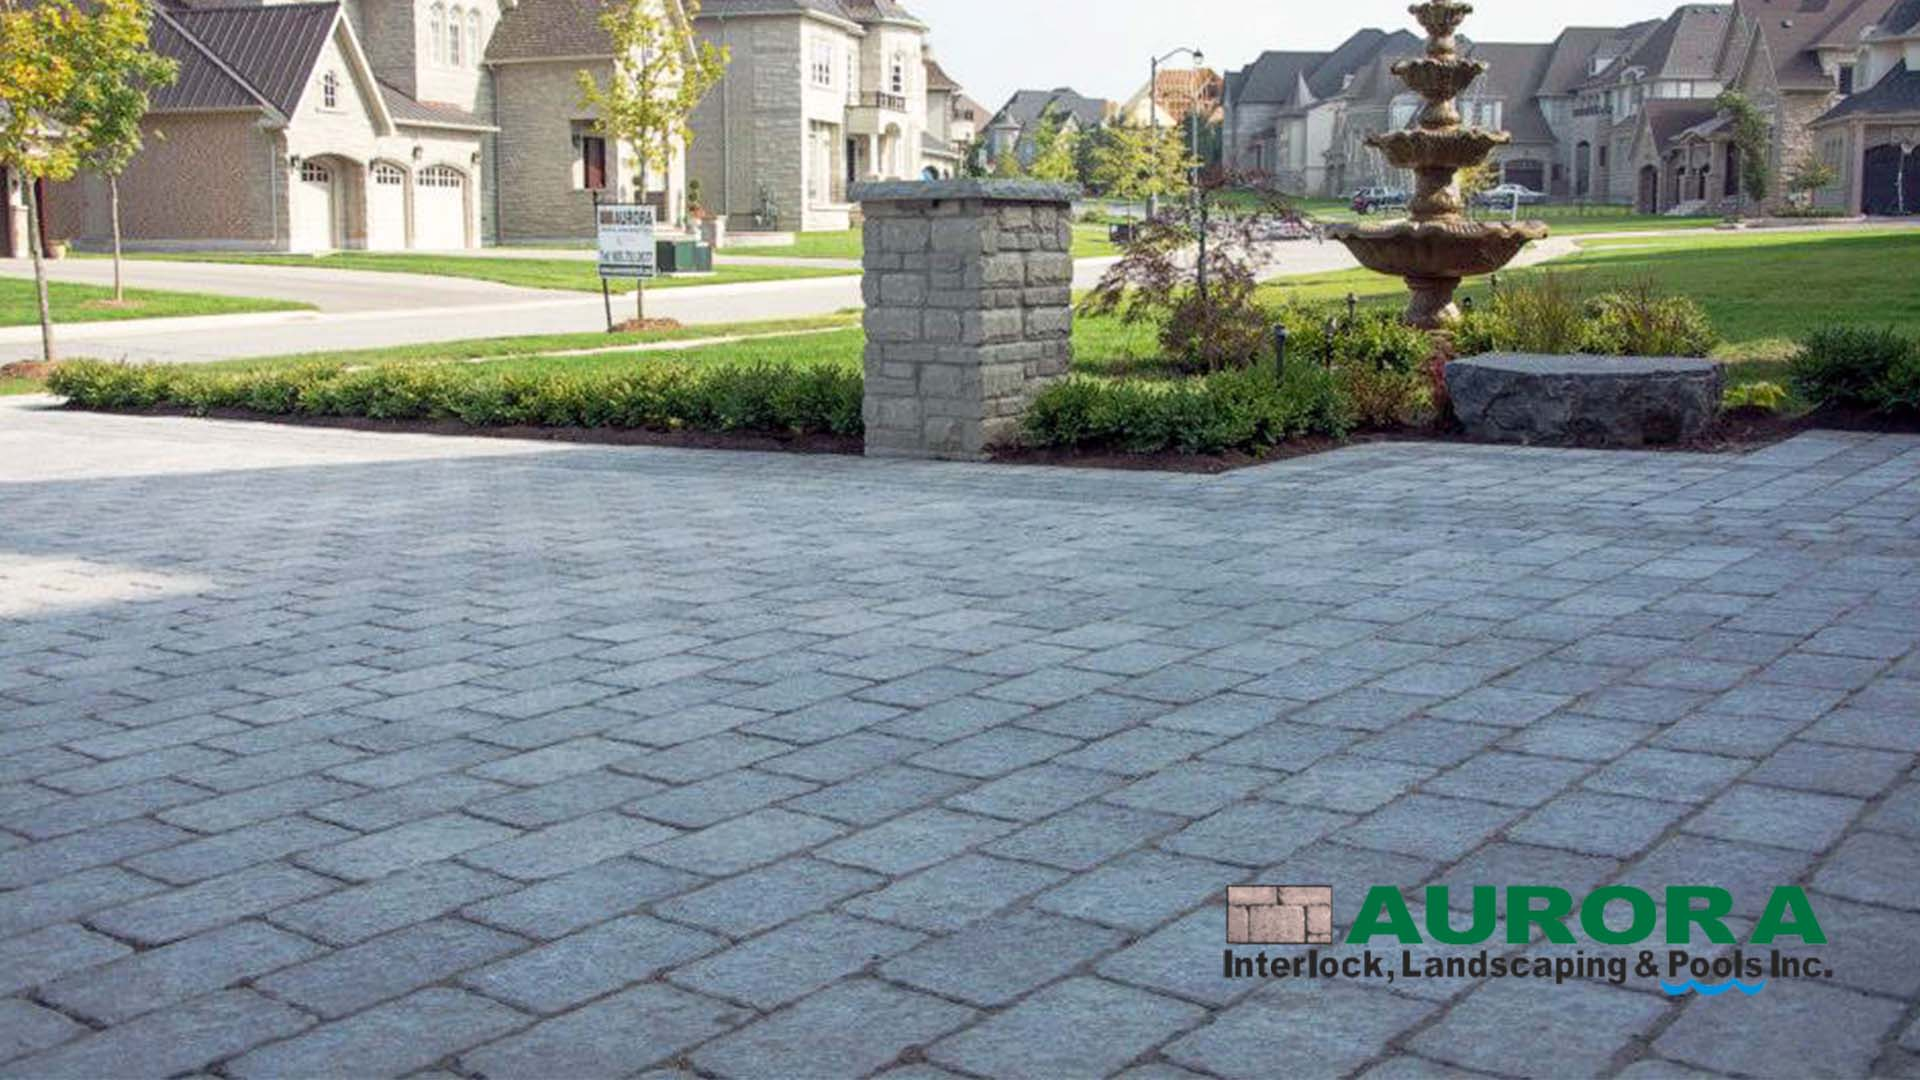 Landscaping Aurora Interlock